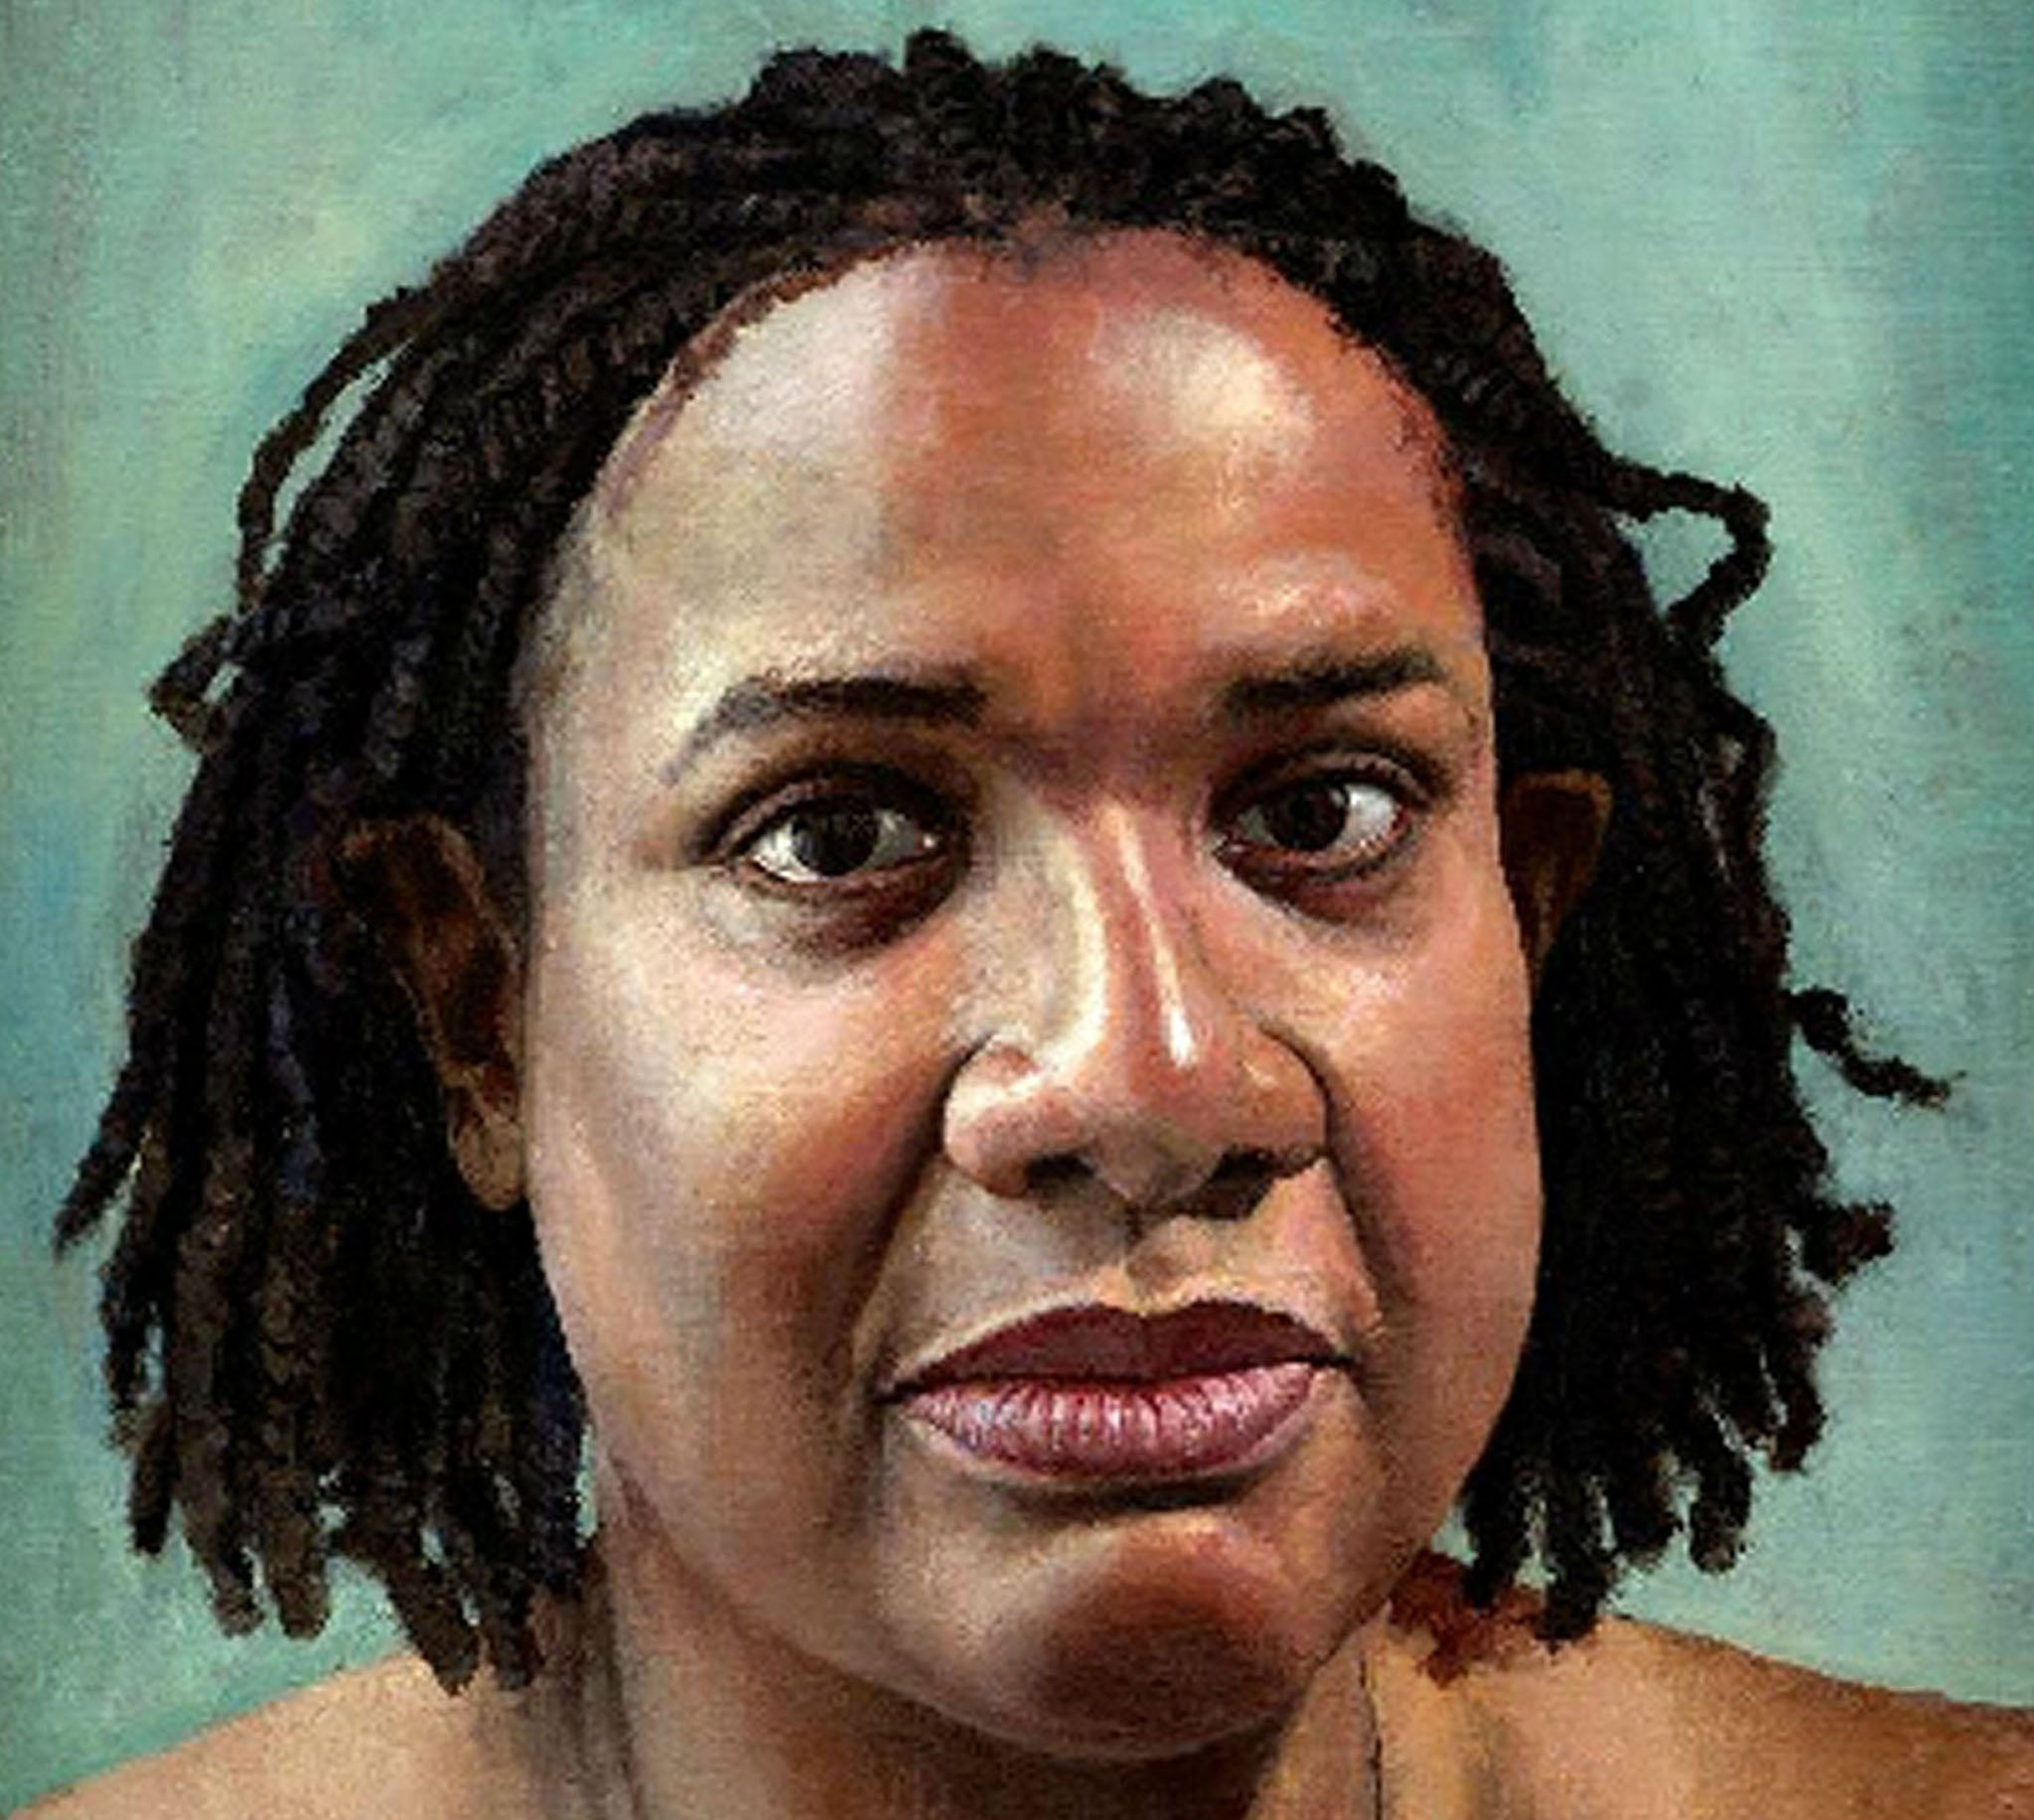 Baxter La Vista >> MPs splurge £250,000 of public money on 'expensive' portraits | The Independent